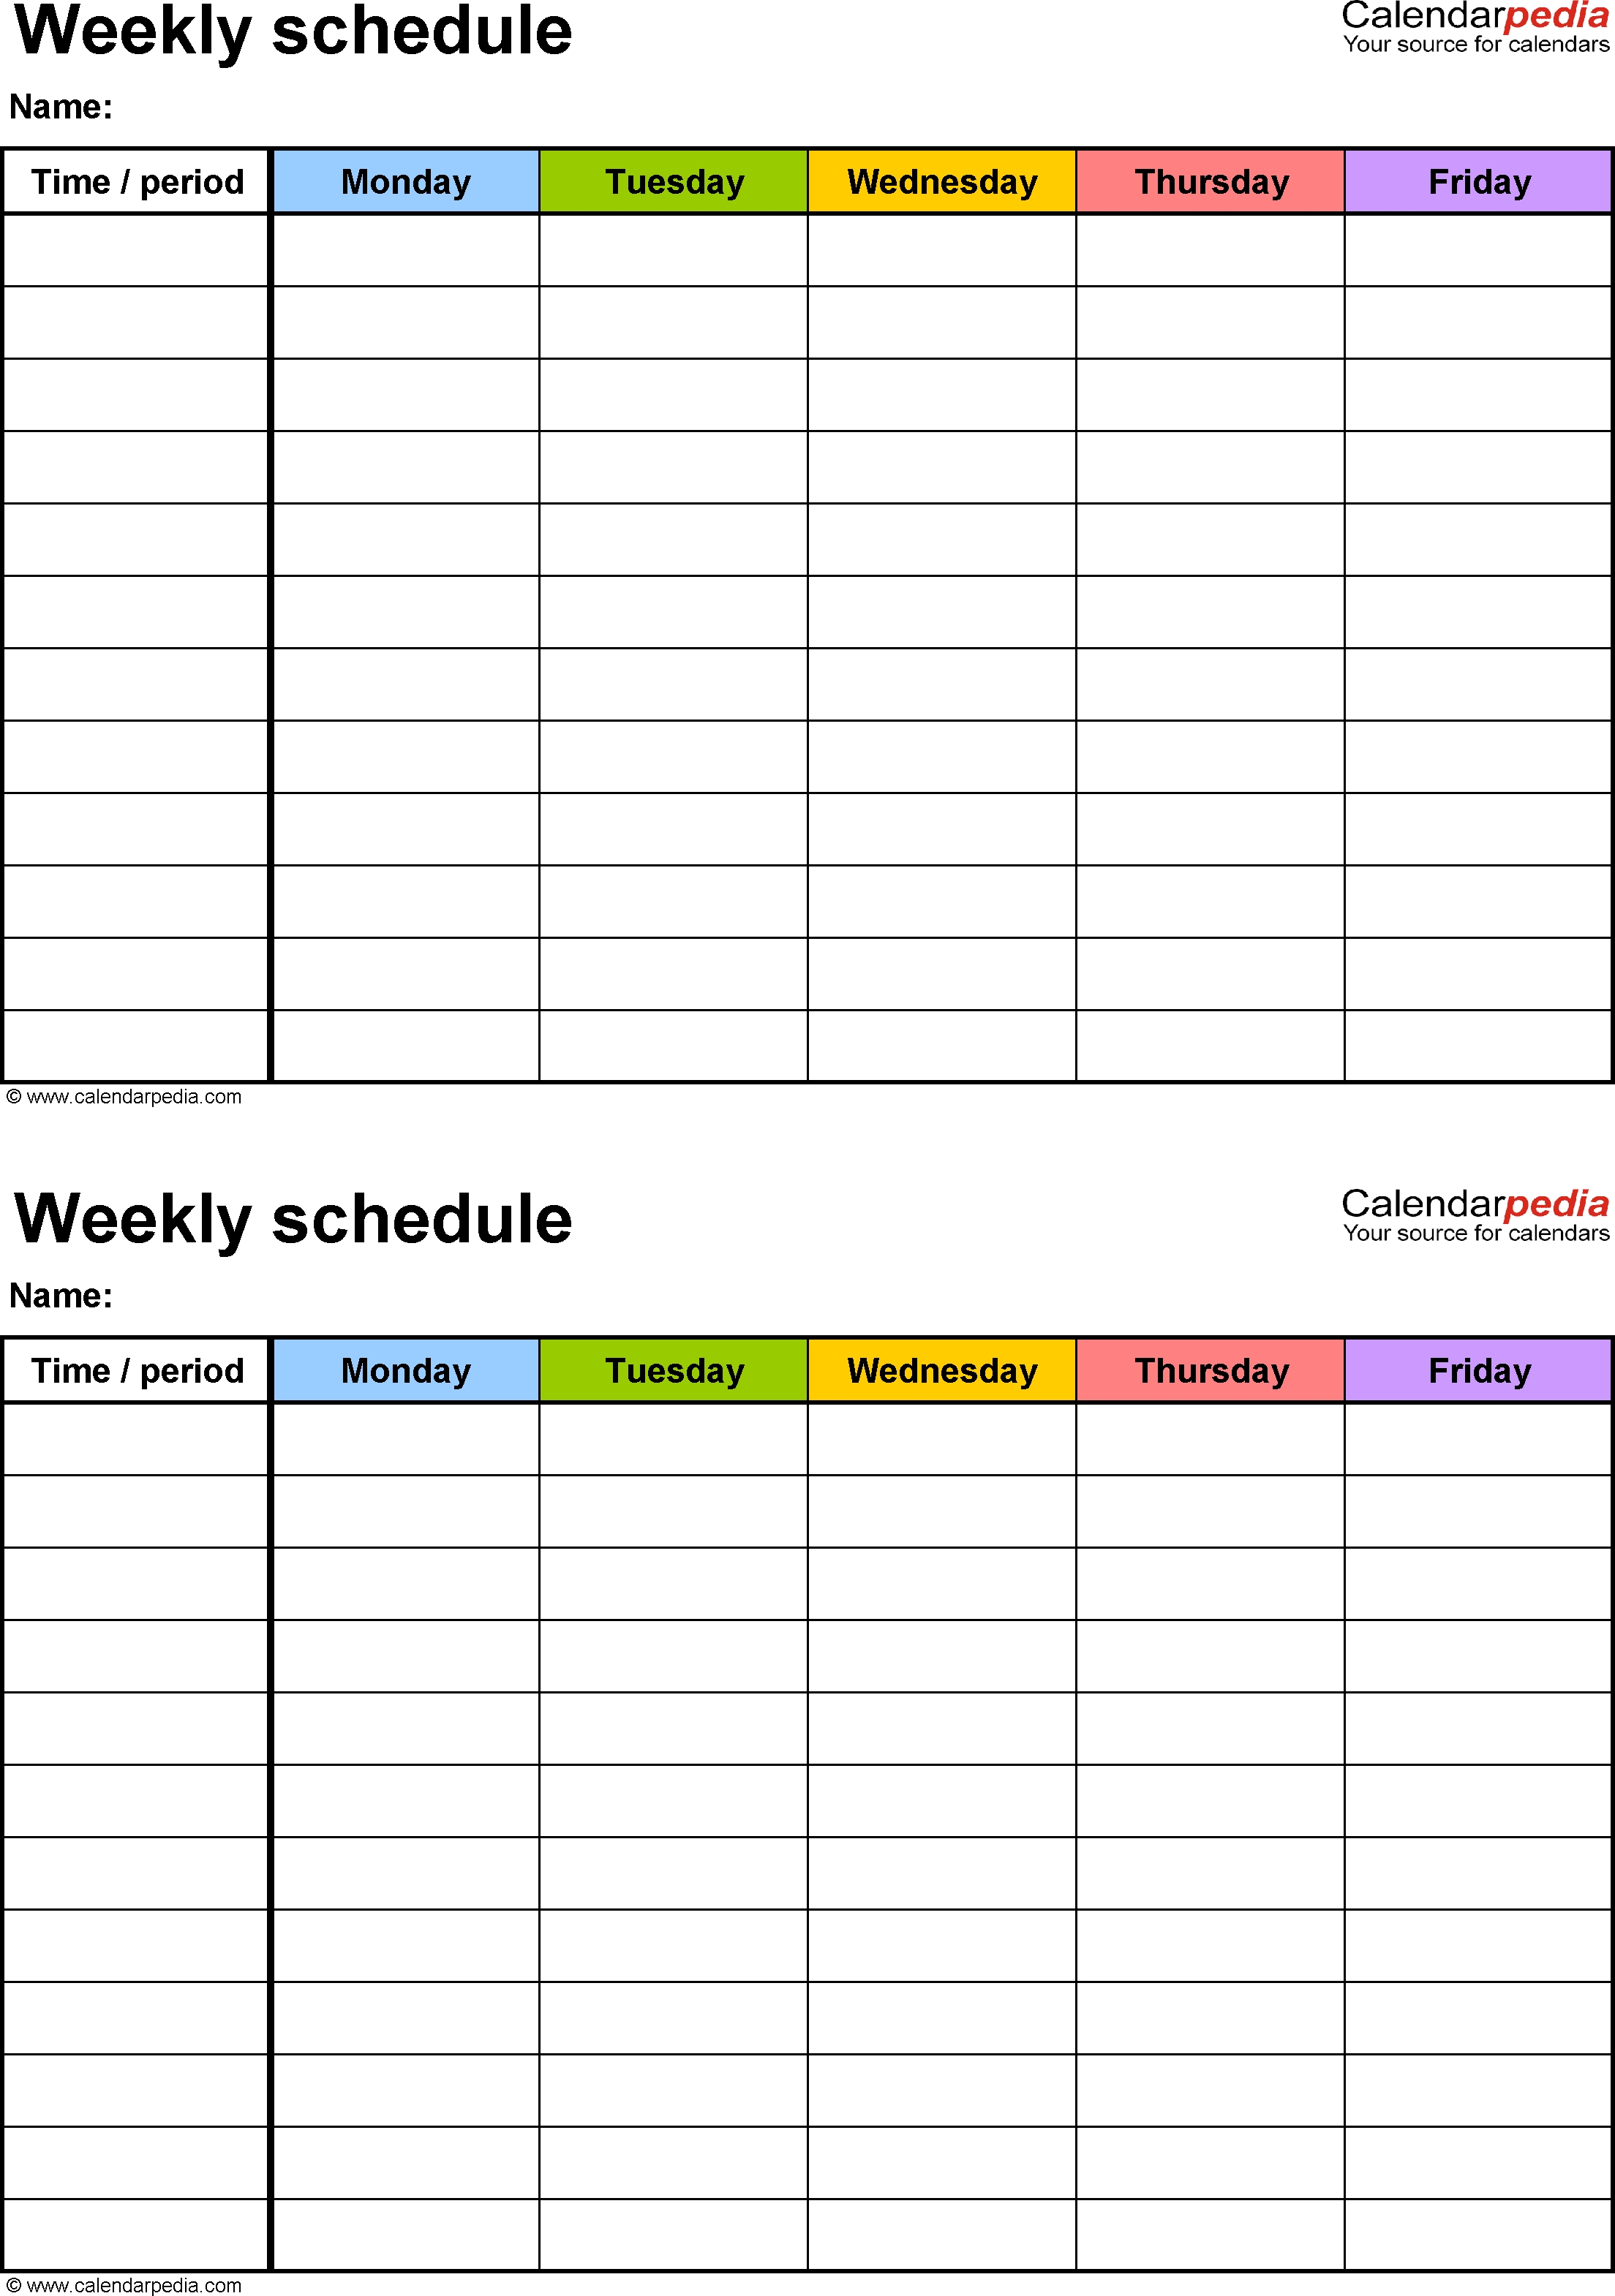 Weekly Schedule Template For Pdf Version 3: 2 Schedules On-Monday To Friday Timetable Template